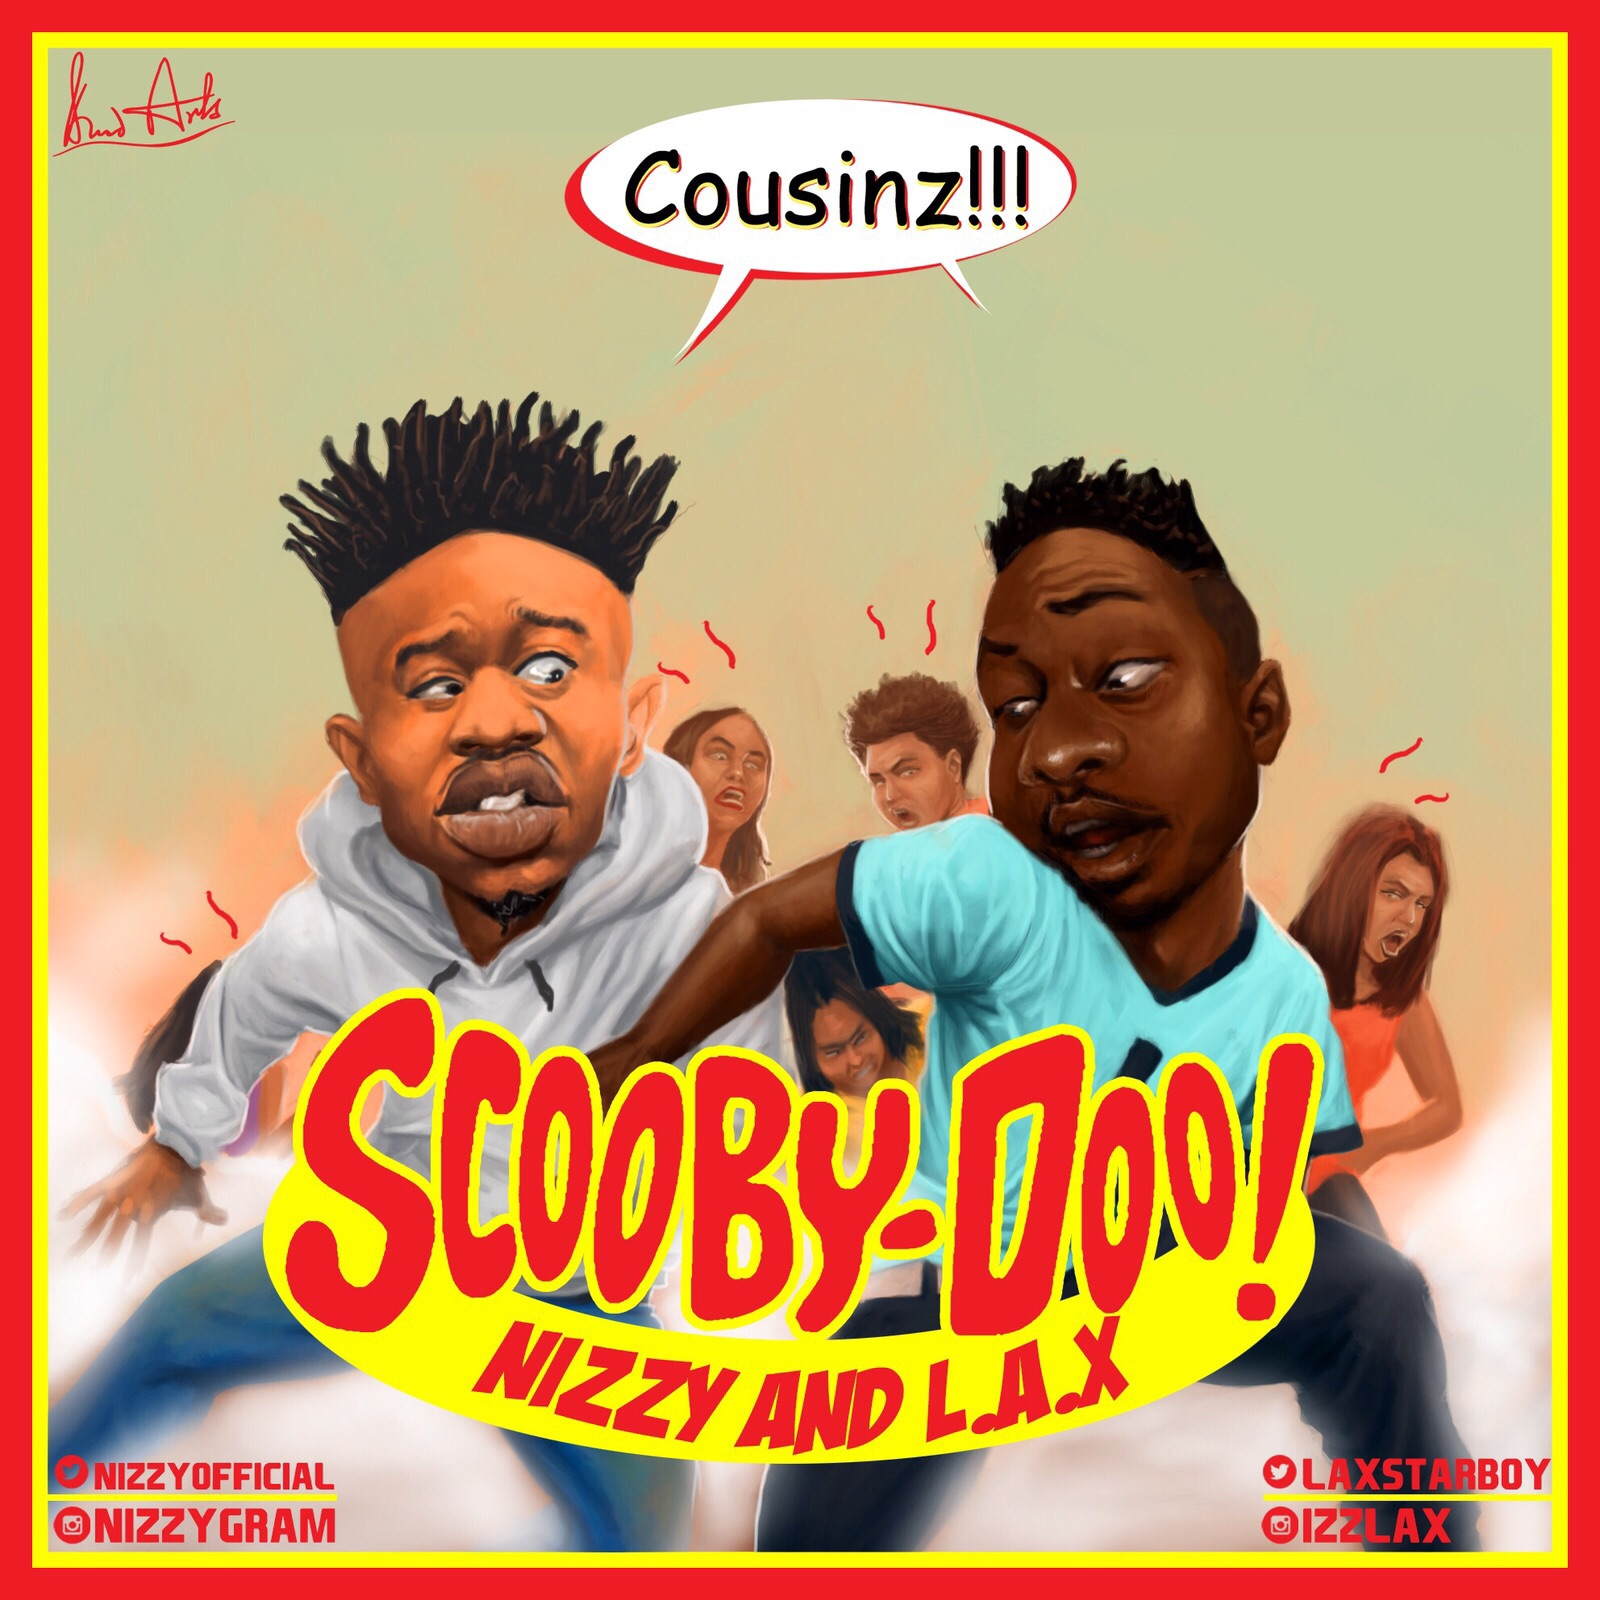 Nizzy L.A.X Scooby Doo Artwork